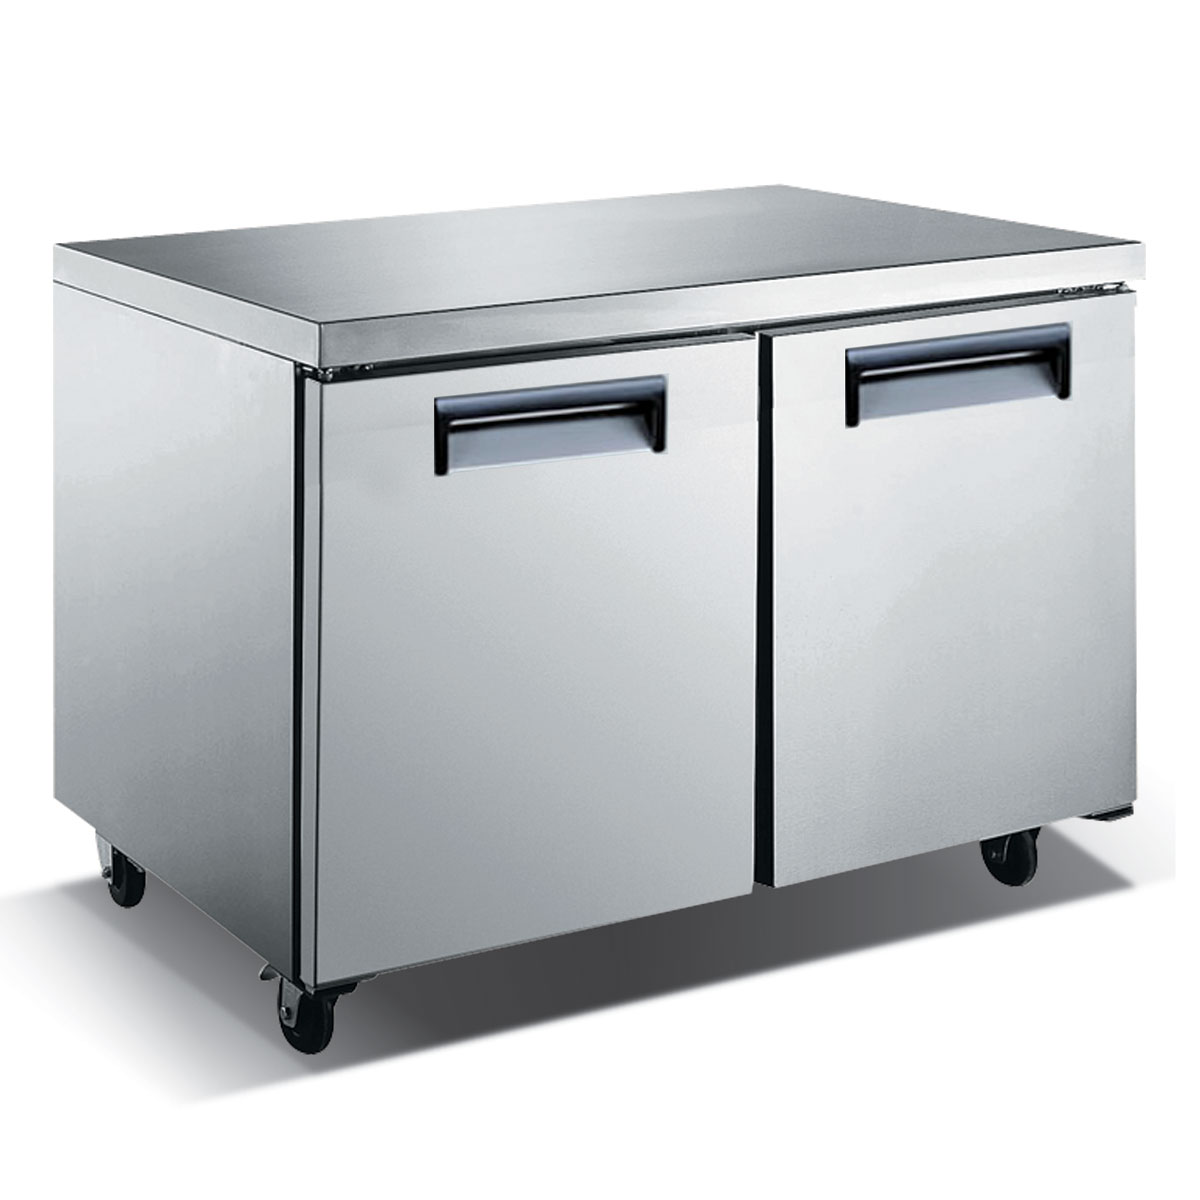 Image of Westwind WUF47 47 in undercounter freezer